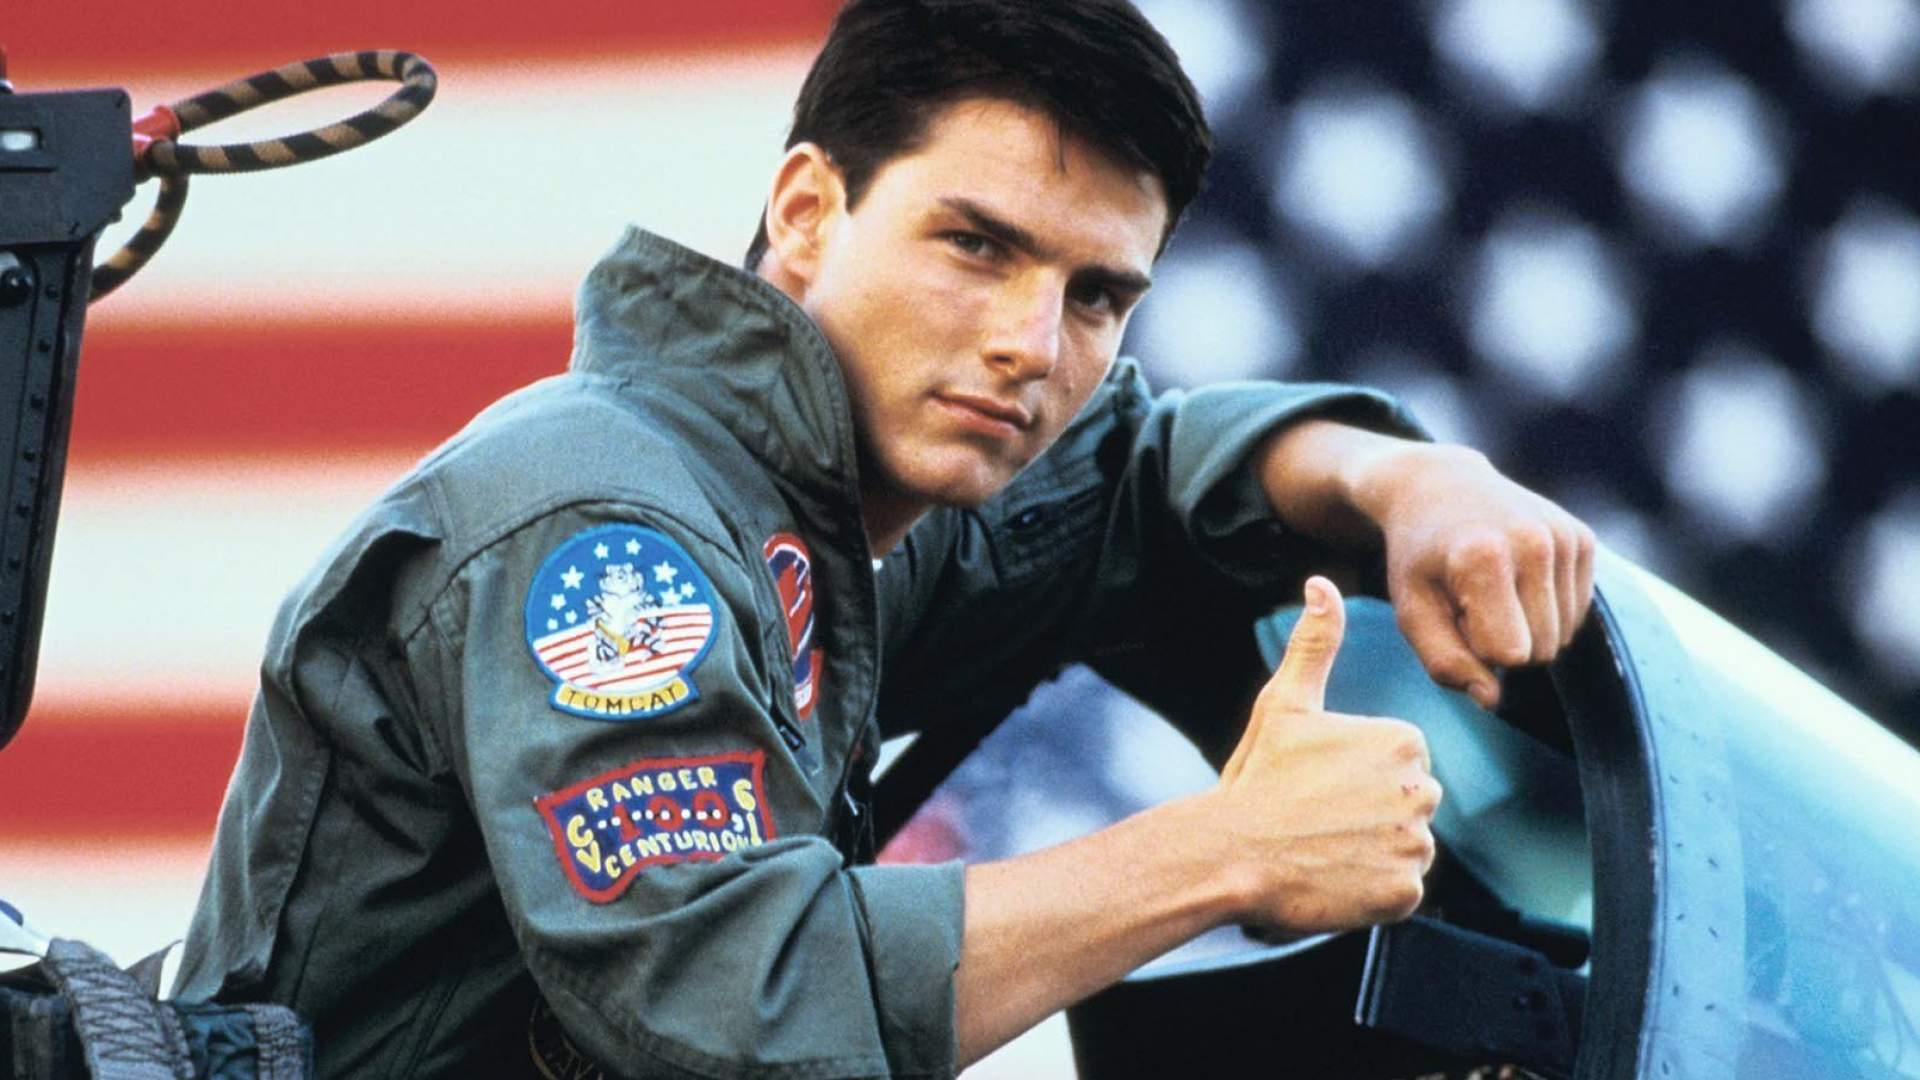 TRAILER: Tom Cruise ist zurück in 'Top Gun 2 - Maverick'